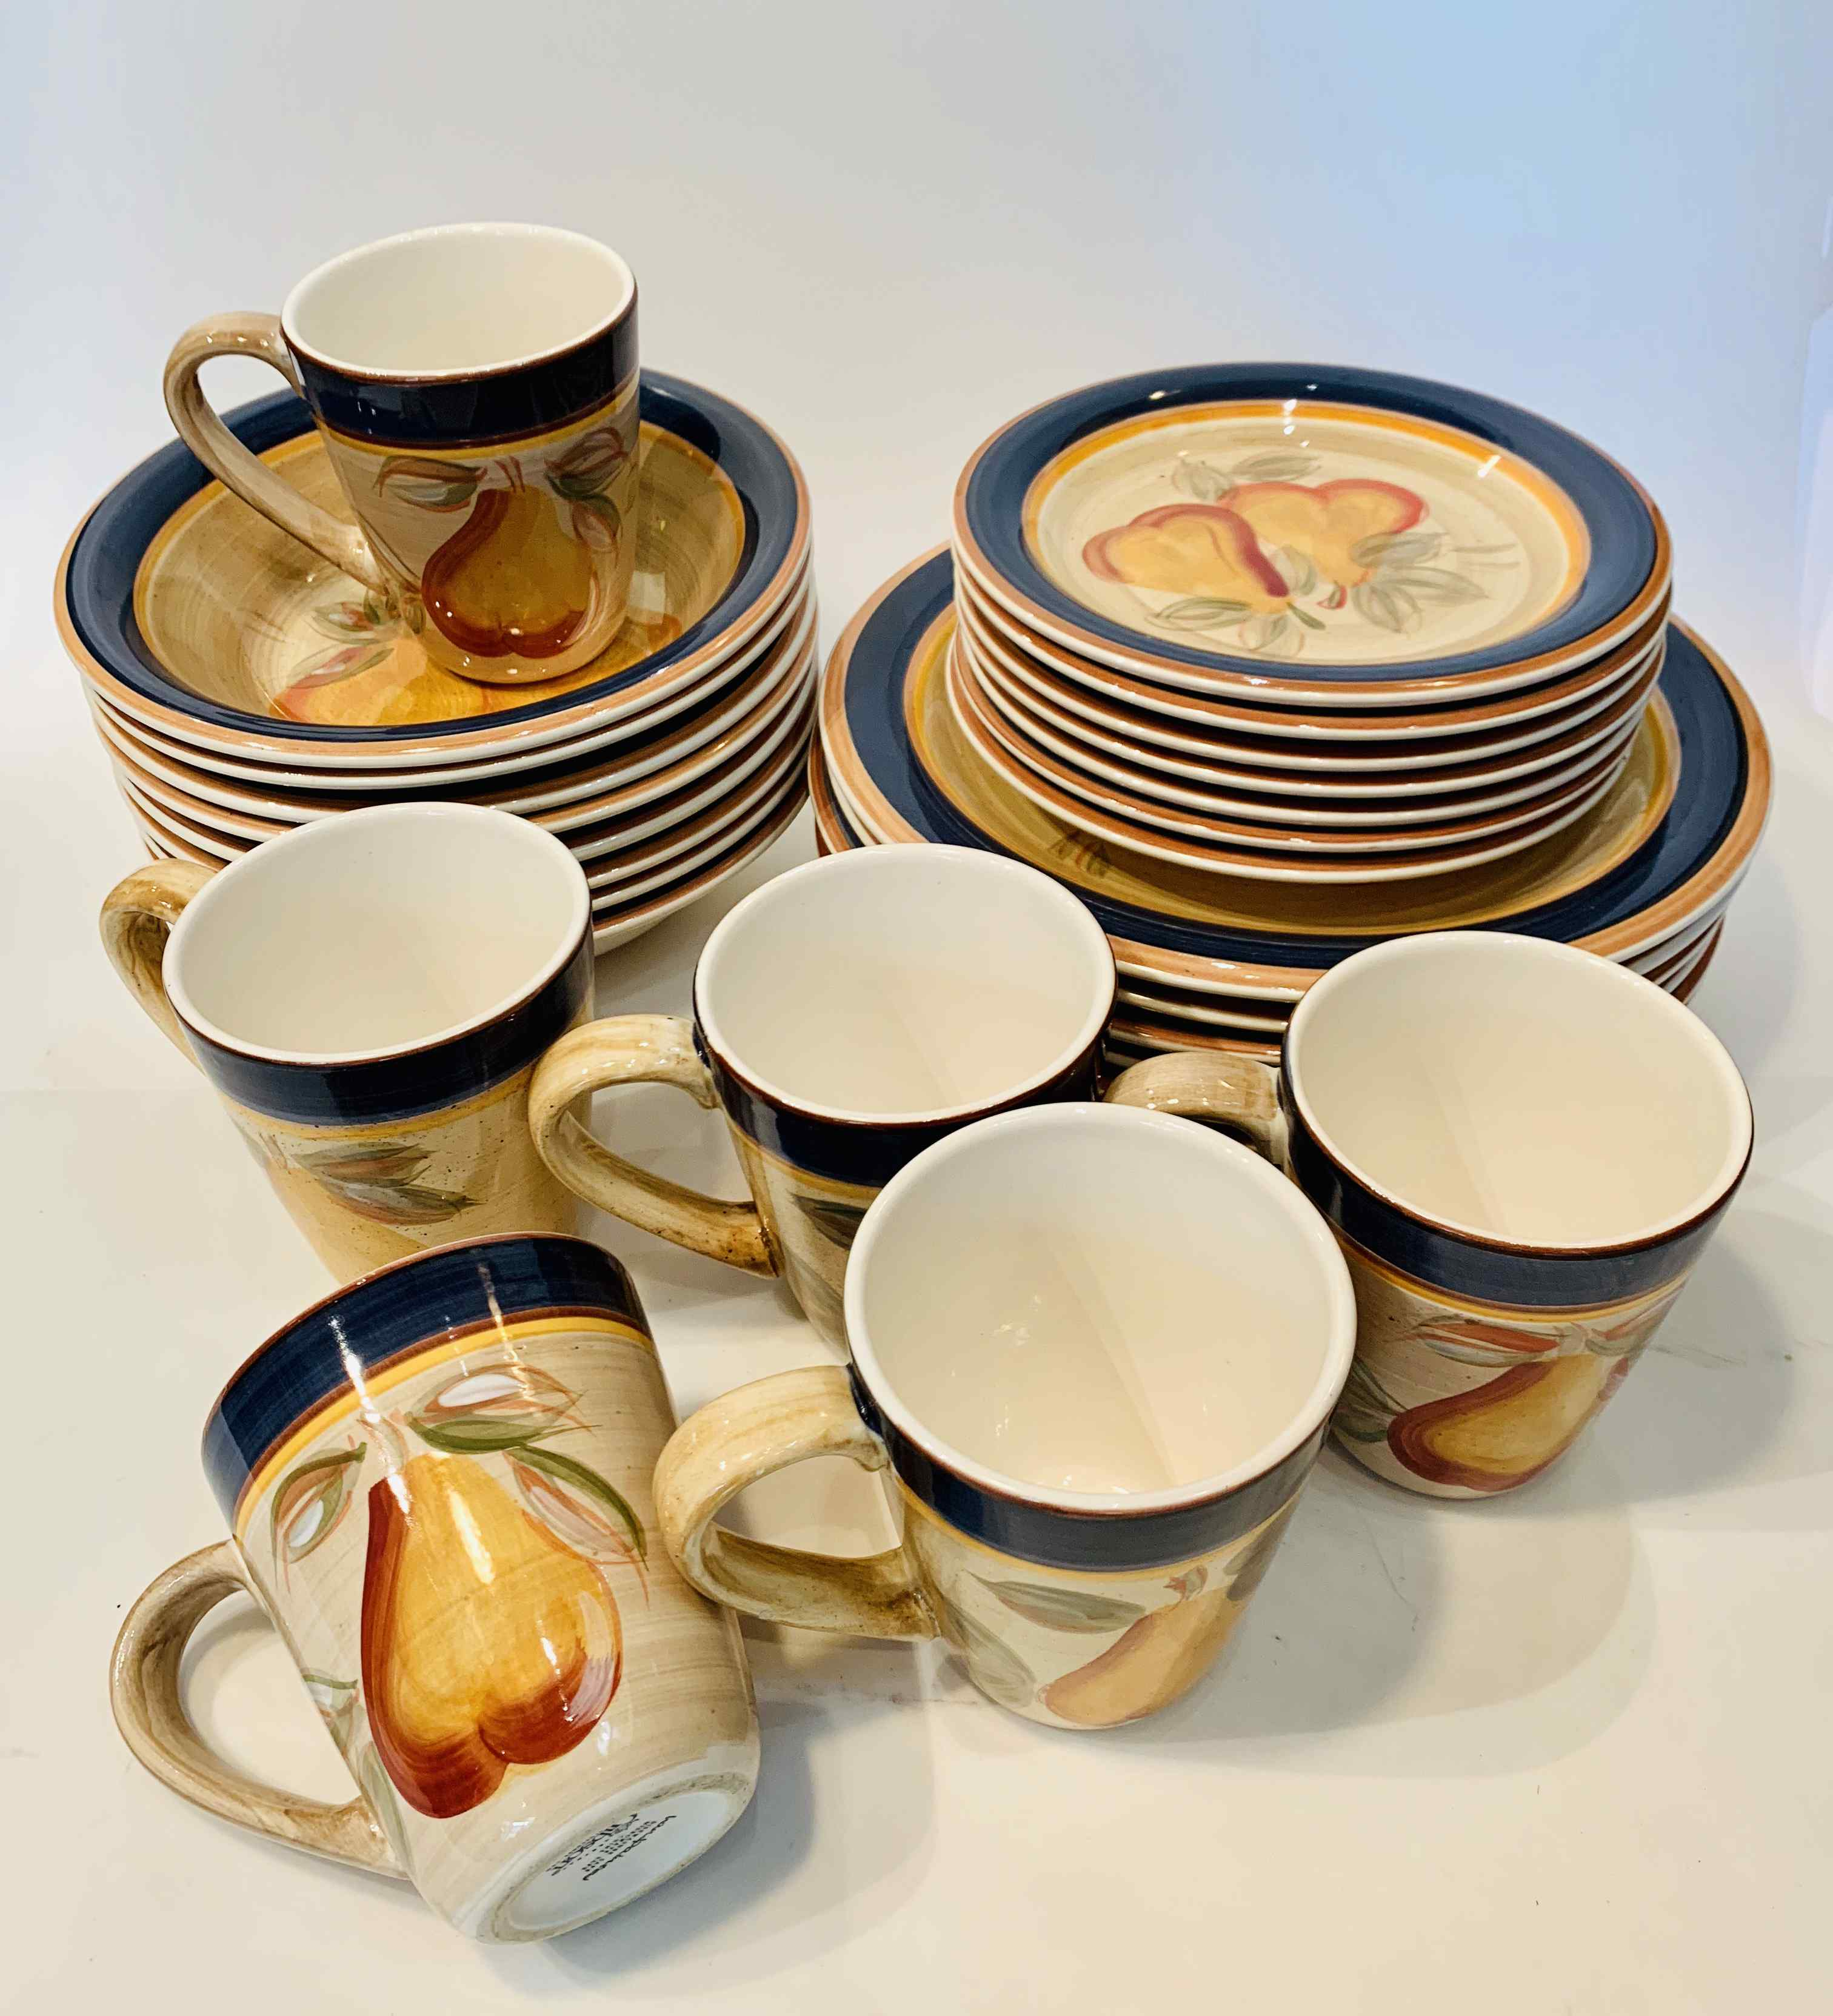 Gibson Ware Dinner Set of 28 pieces